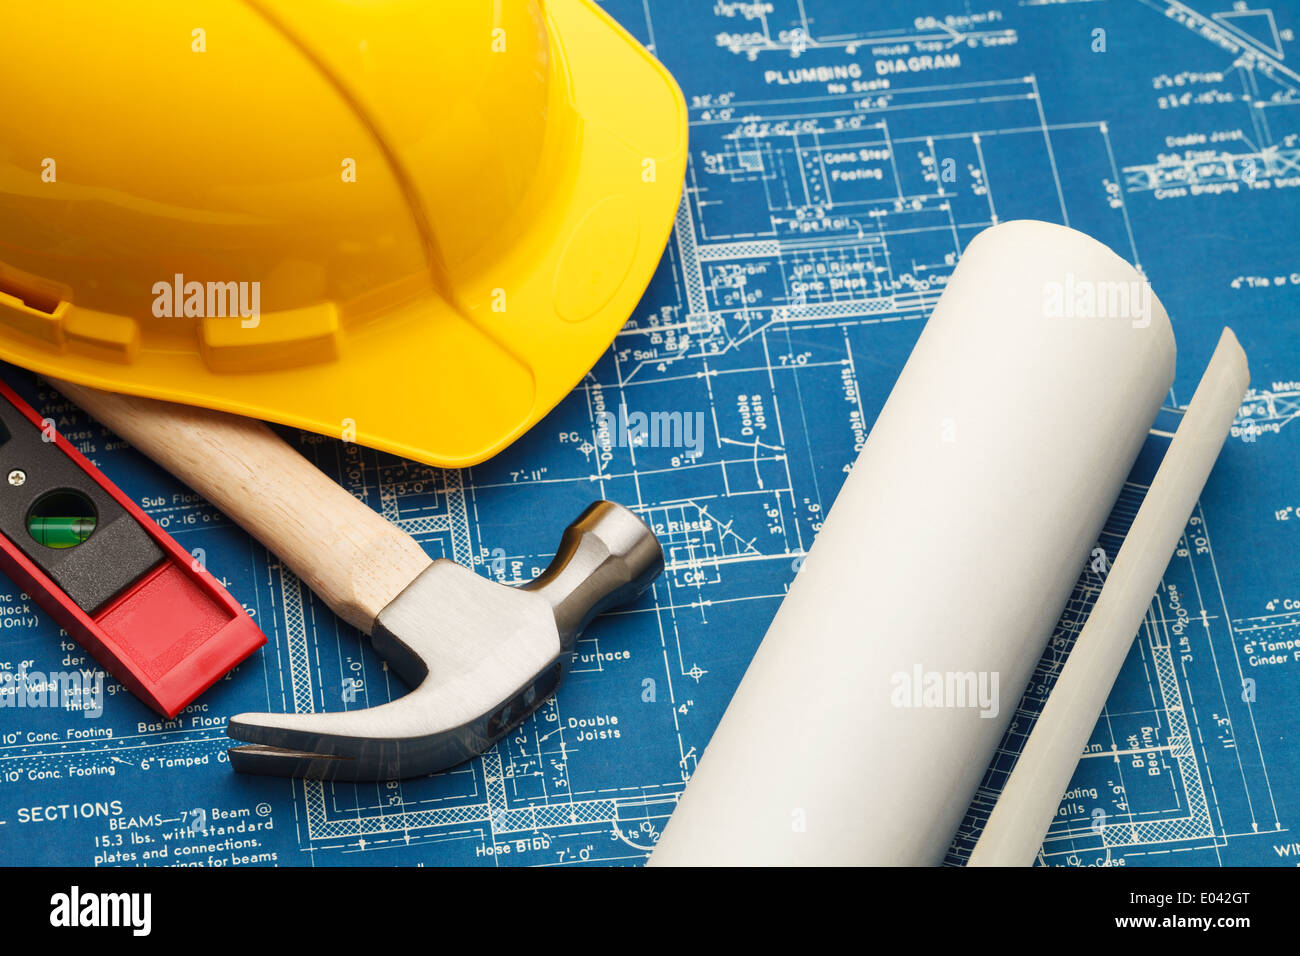 Blueprints and Construction Tools with Hard Hat. - Stock Image